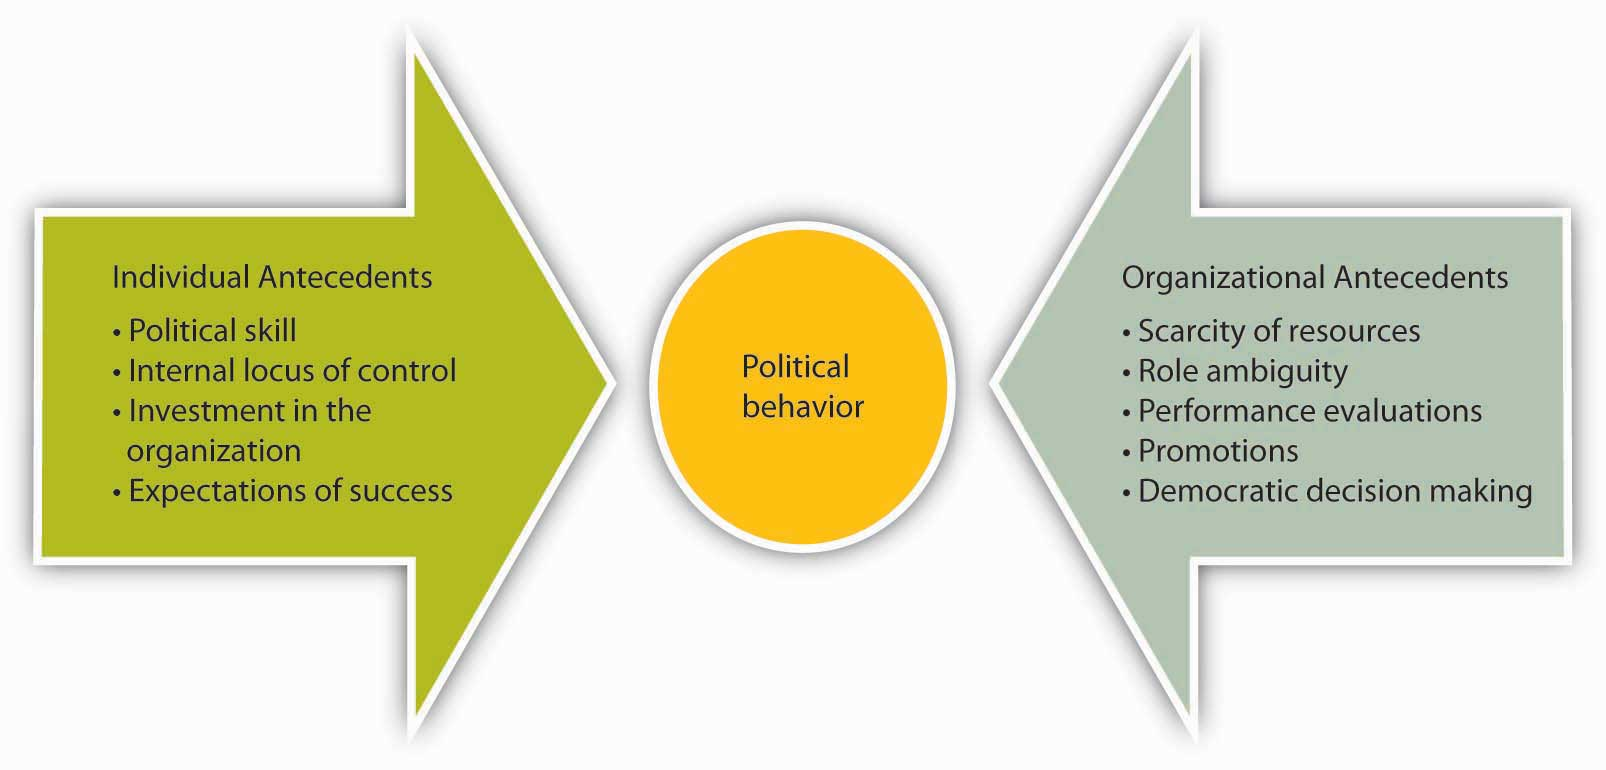 organizational behavior flatworld individual and organizational antecedents can both lead to political behavior